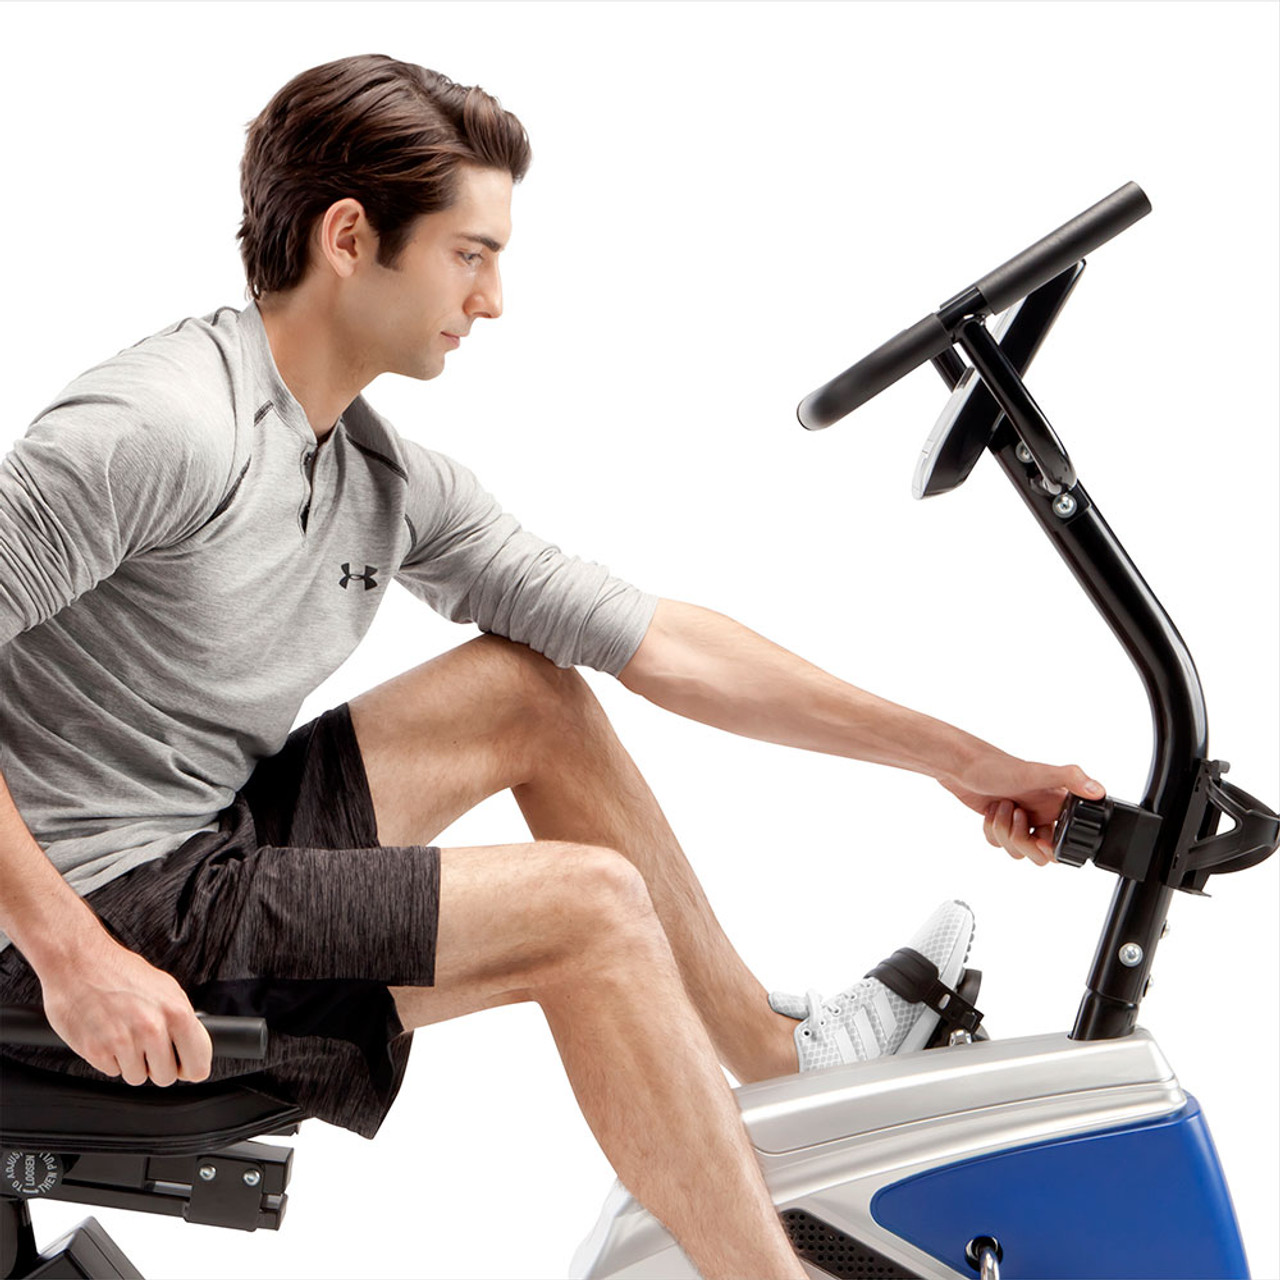 The Marcy Magnetic Recumbent Bike ME-1019R has easily adjustable resistance